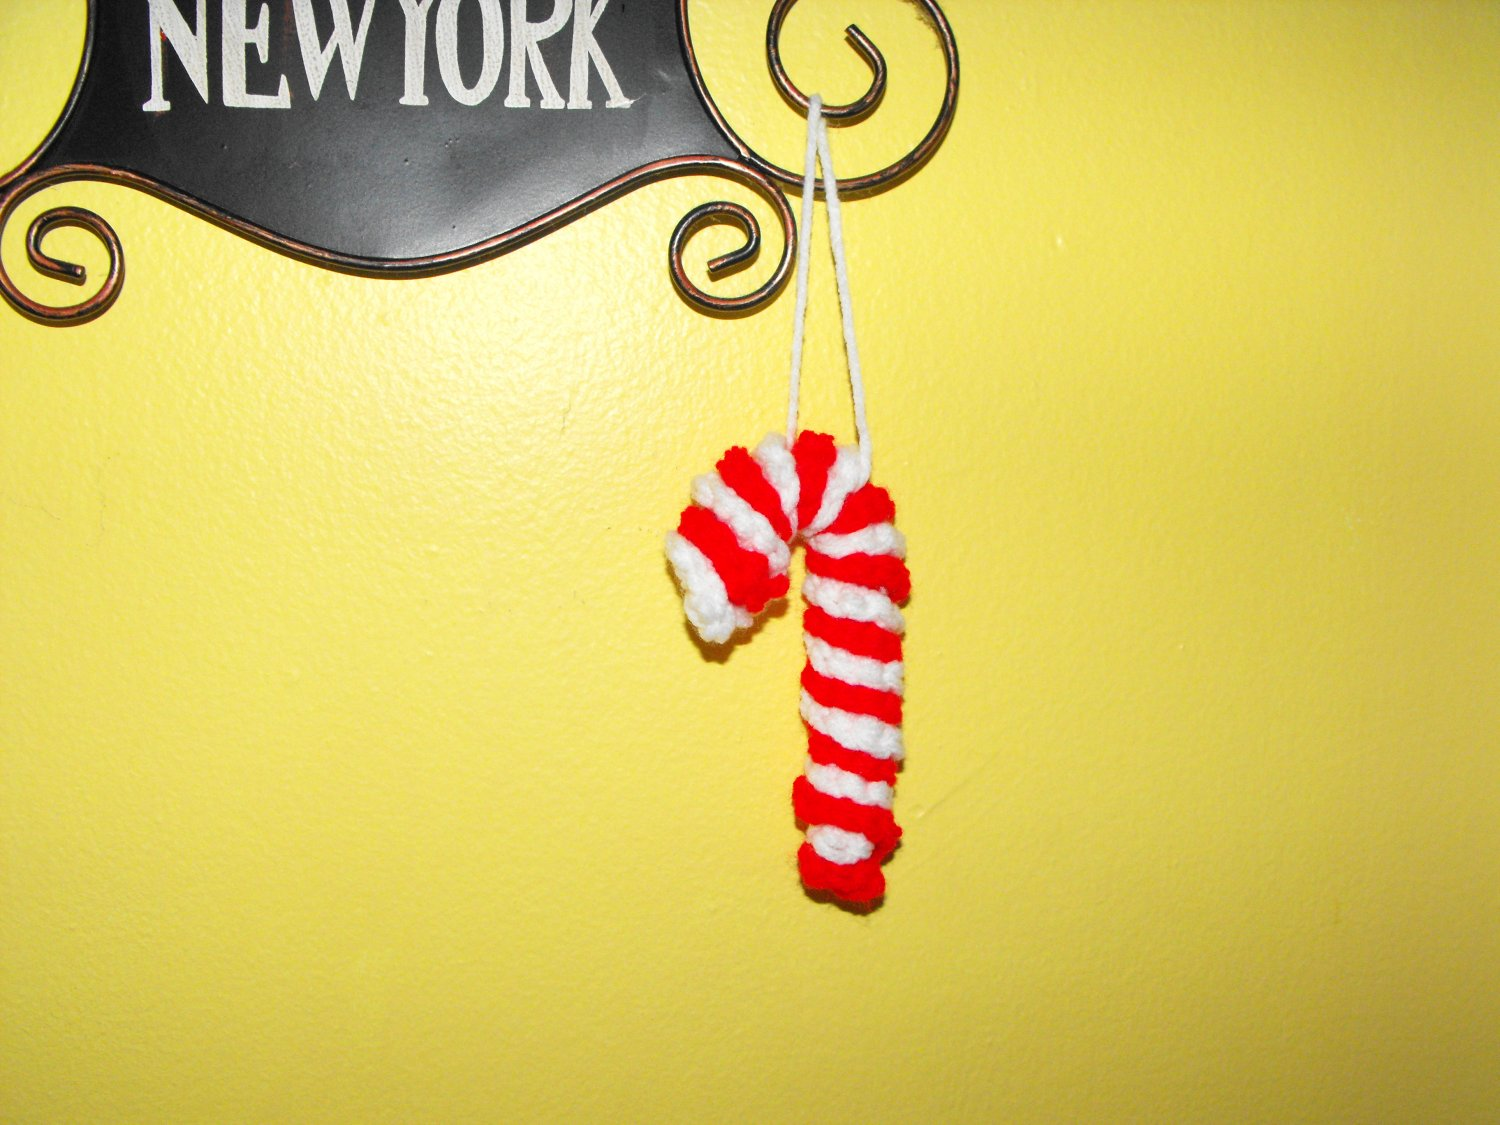 Crocheted Red and White Candy Cane Christmas Tree Ornament